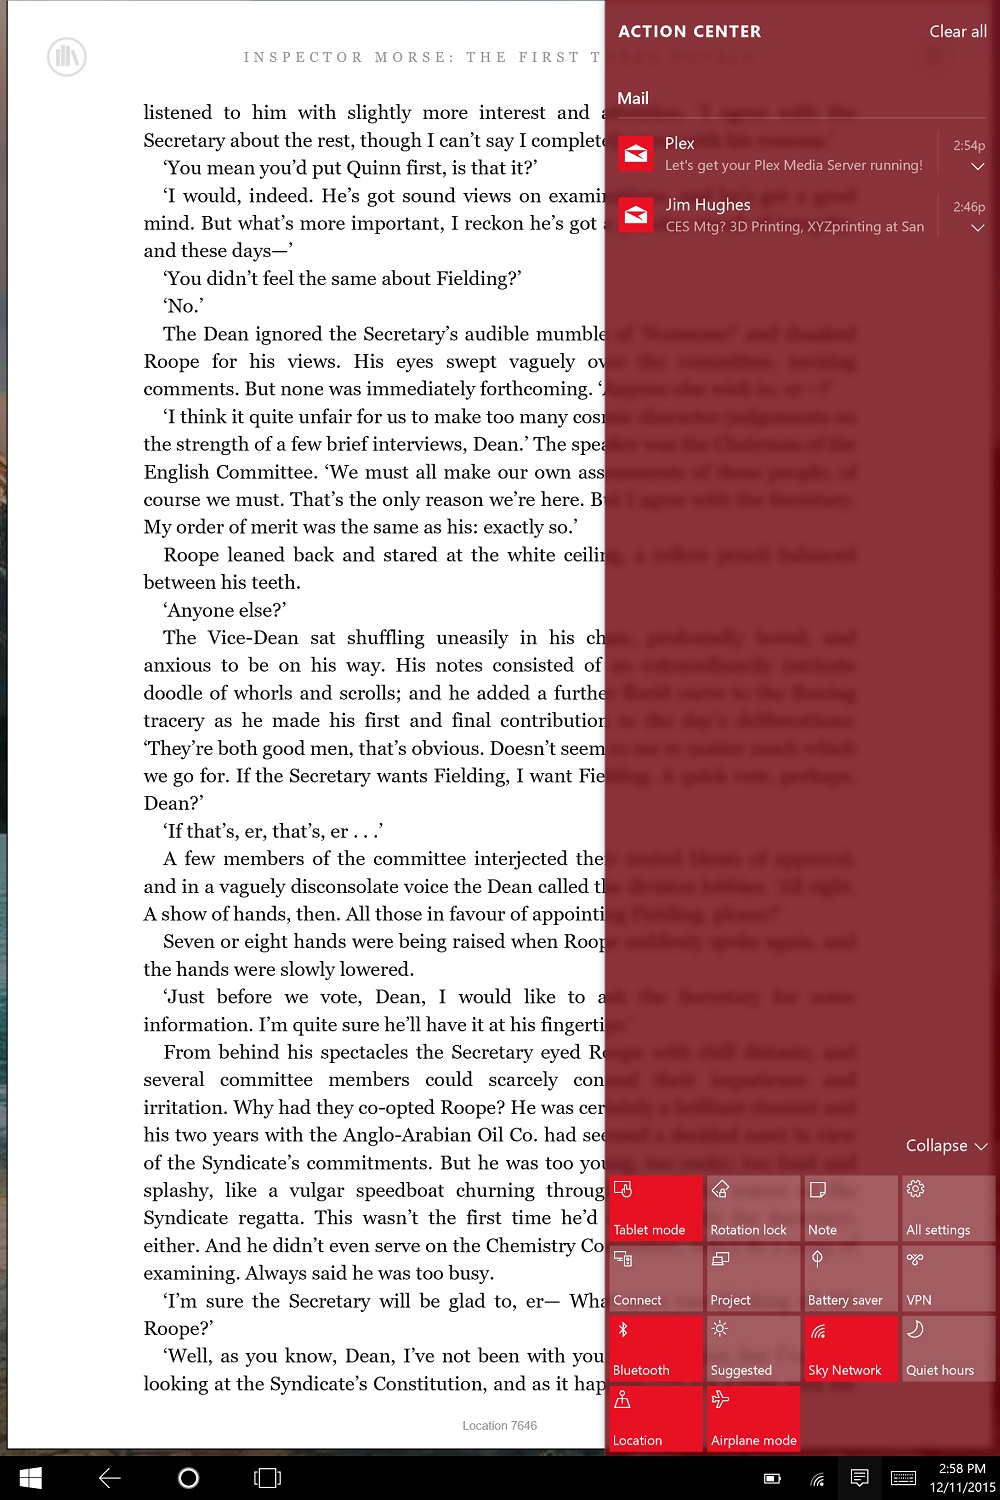 How to Read eBooks on Windows 10 2-in-1s & Tablets